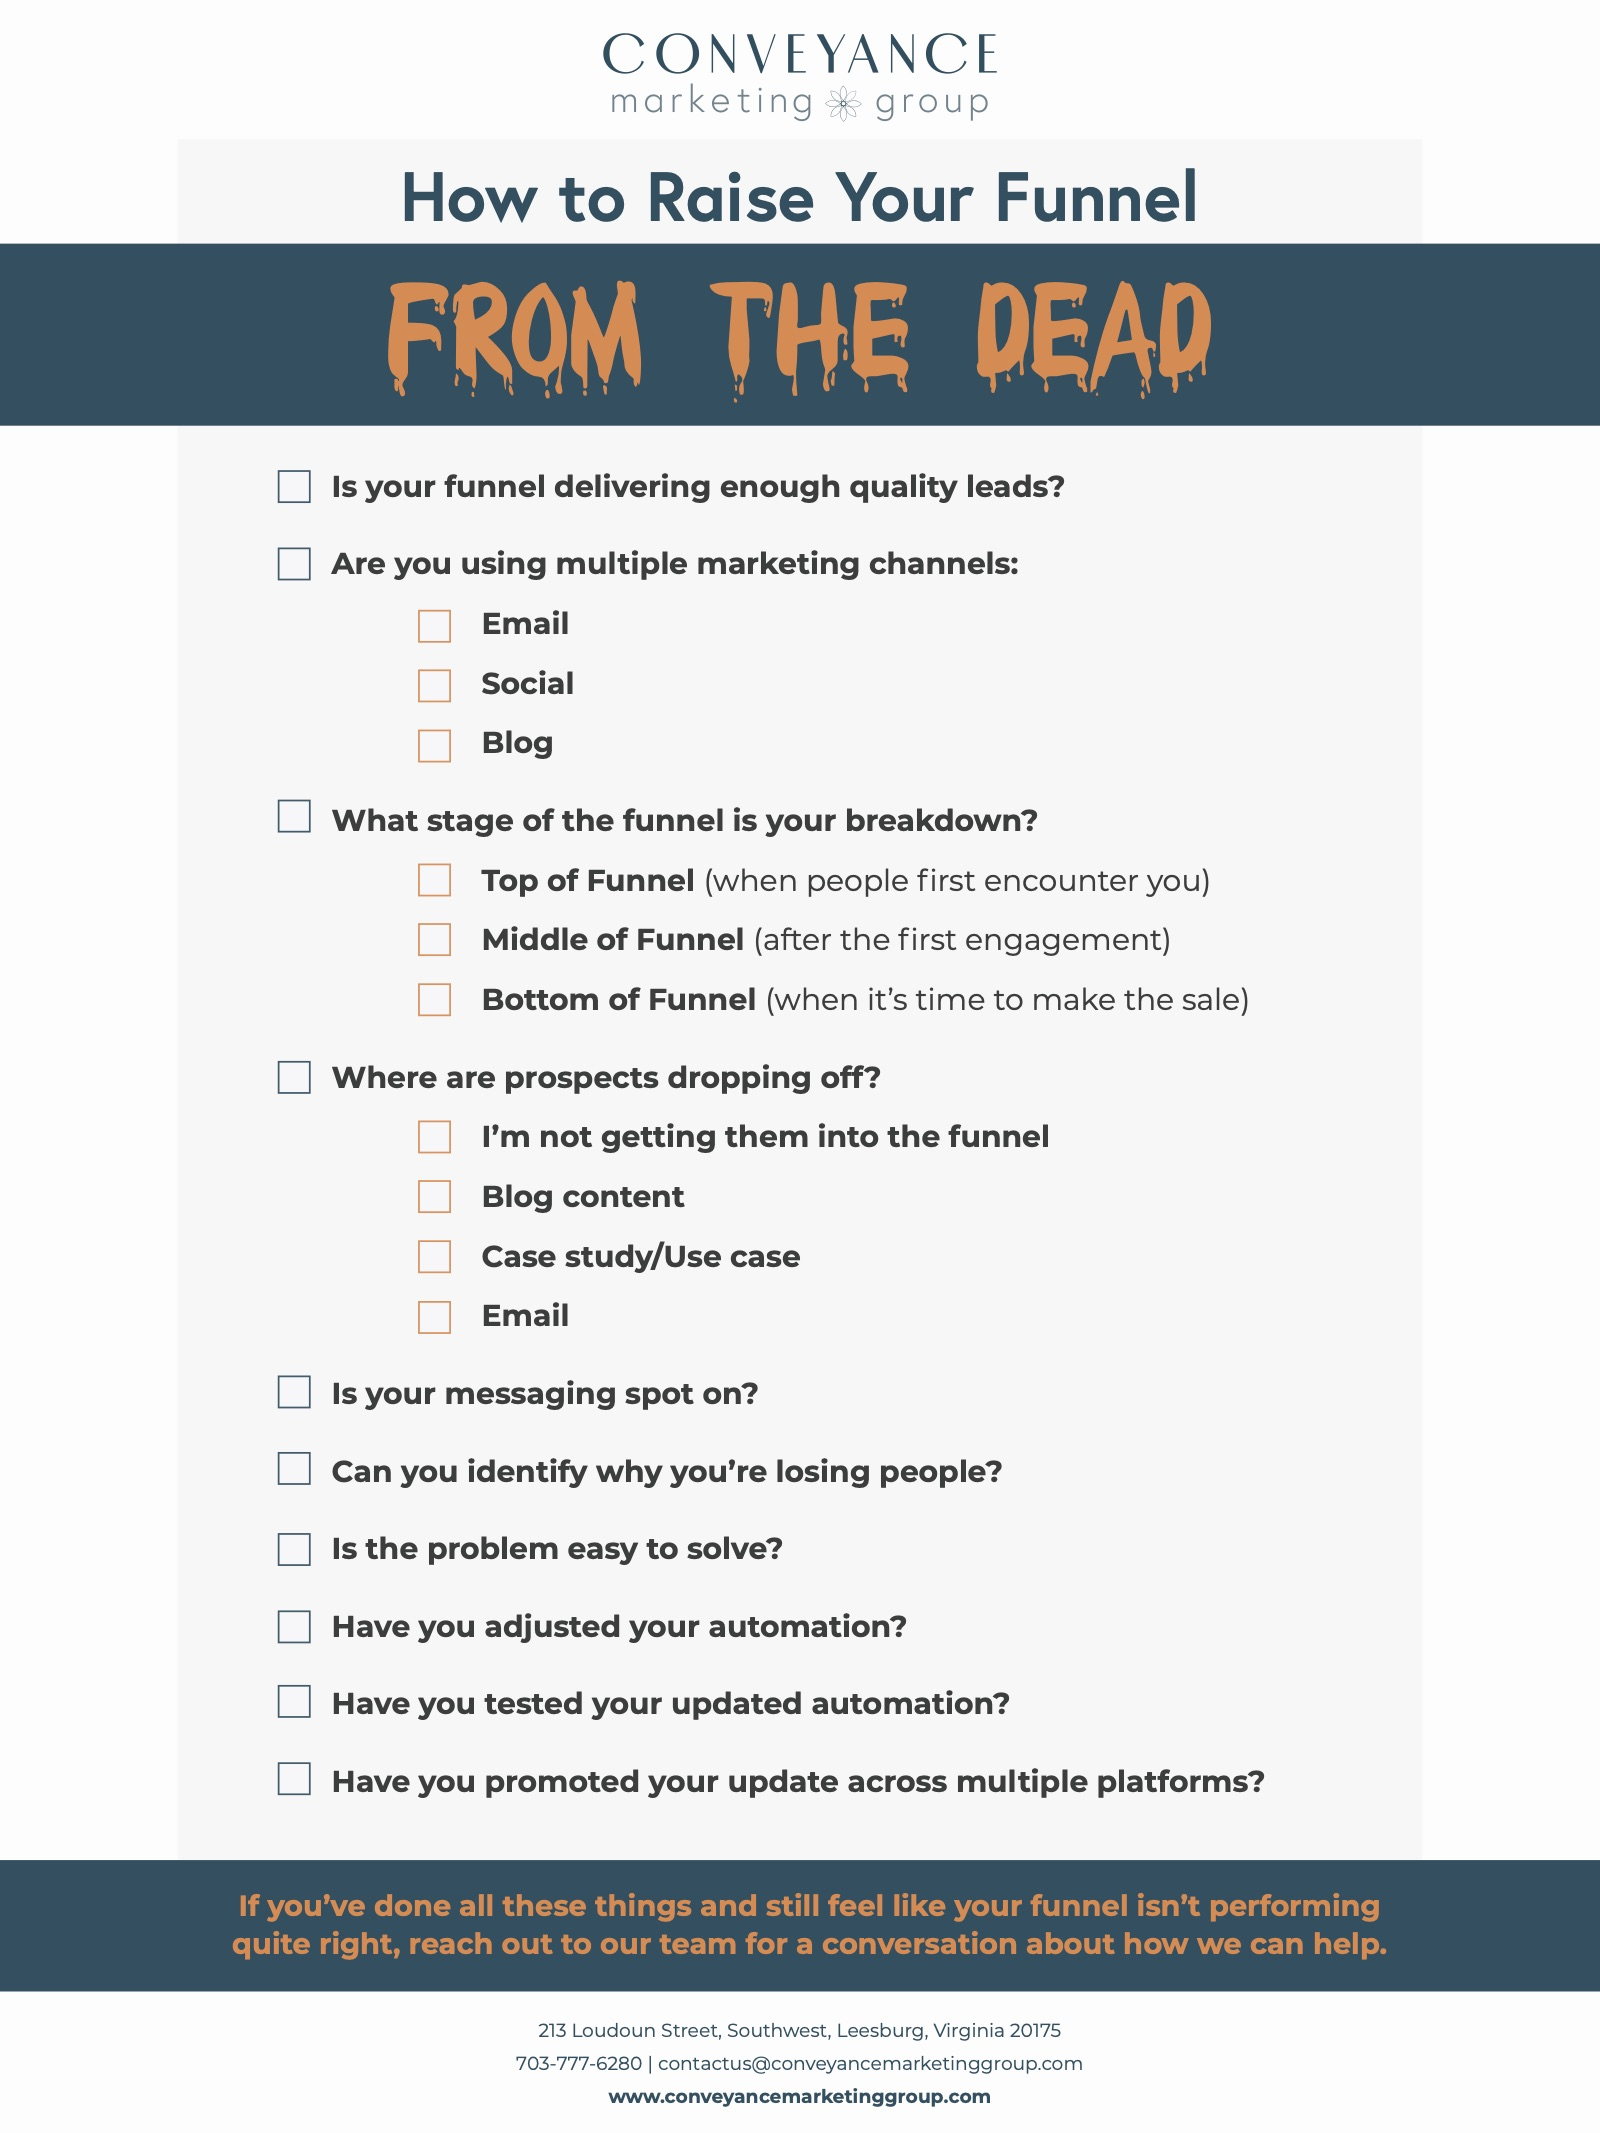 20201026-CMG-Funnel from the dead Checklist